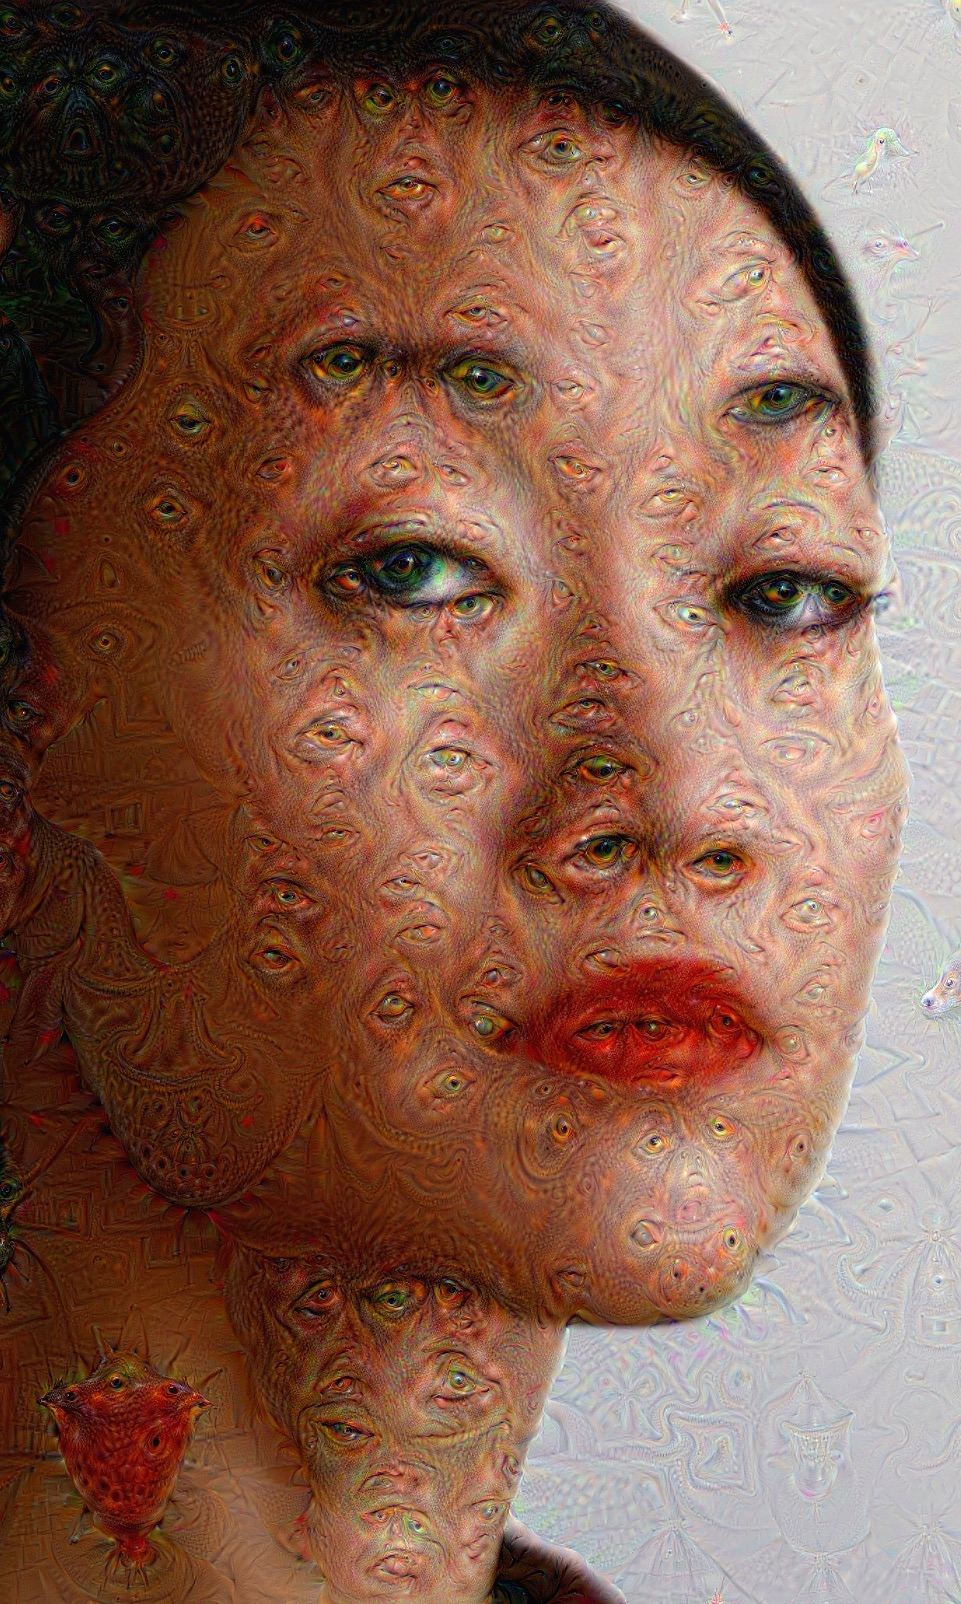 deepdreams